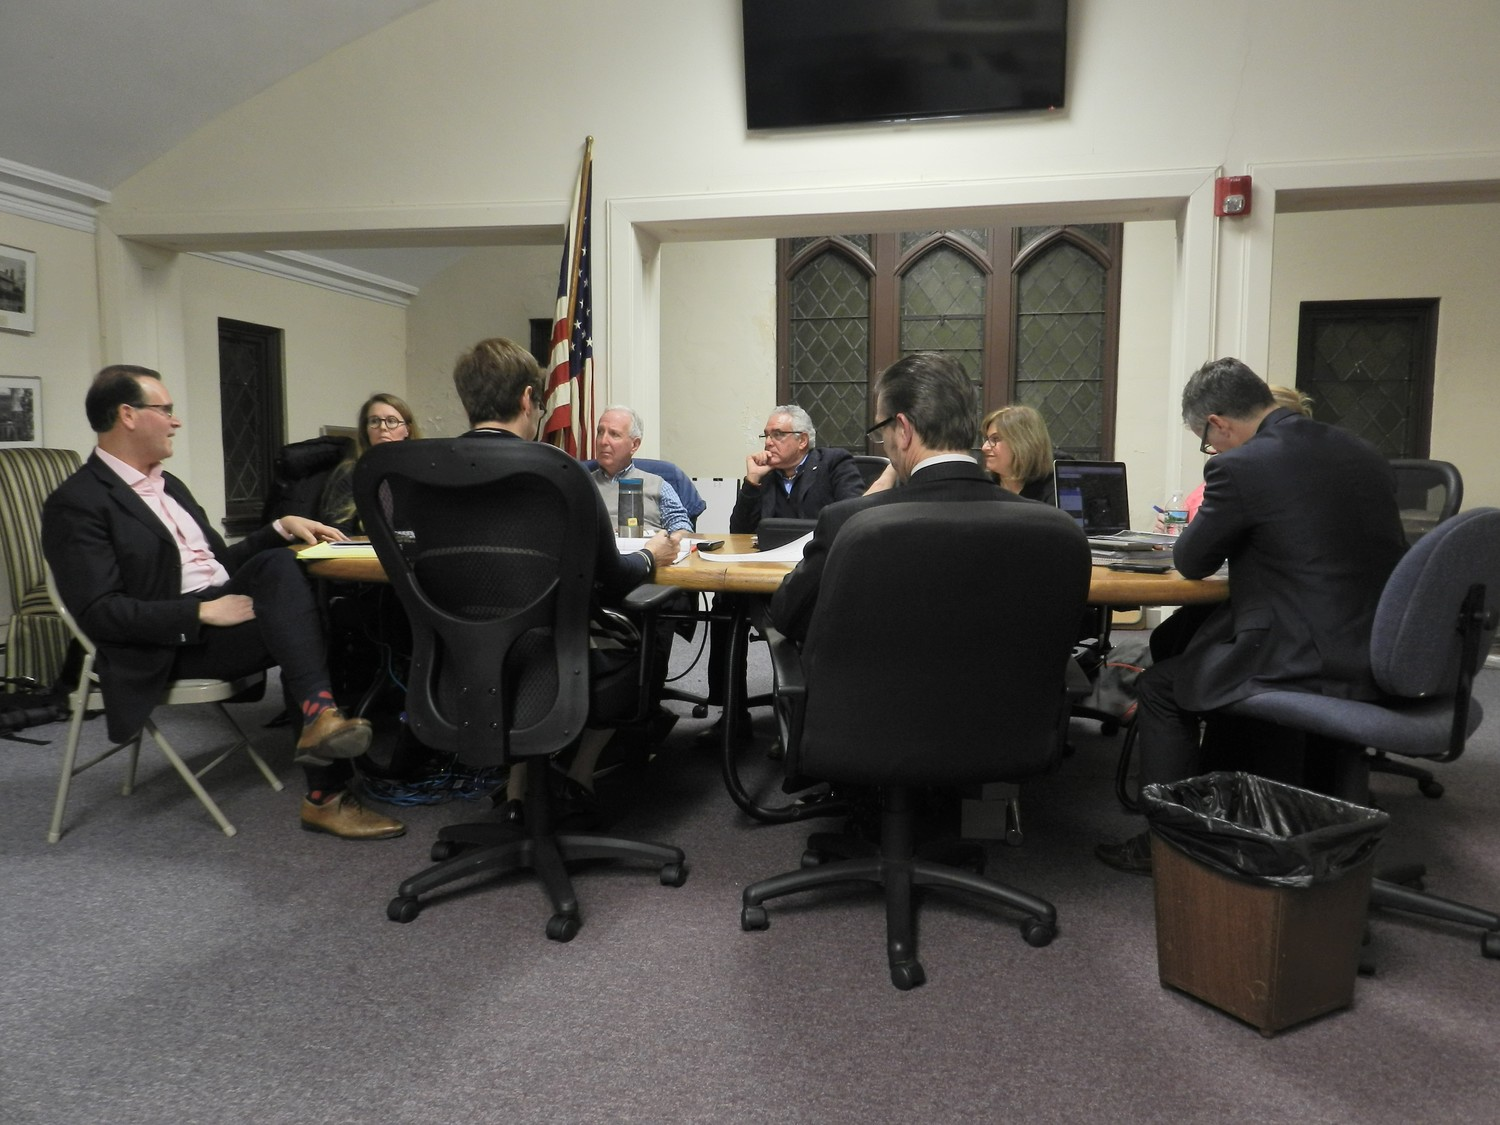 The Village Board held its first public comment meeting of the new year, and discussed a variety of issues including Littleworth Lane, the prospects of a five-year plan, and New York American Water.